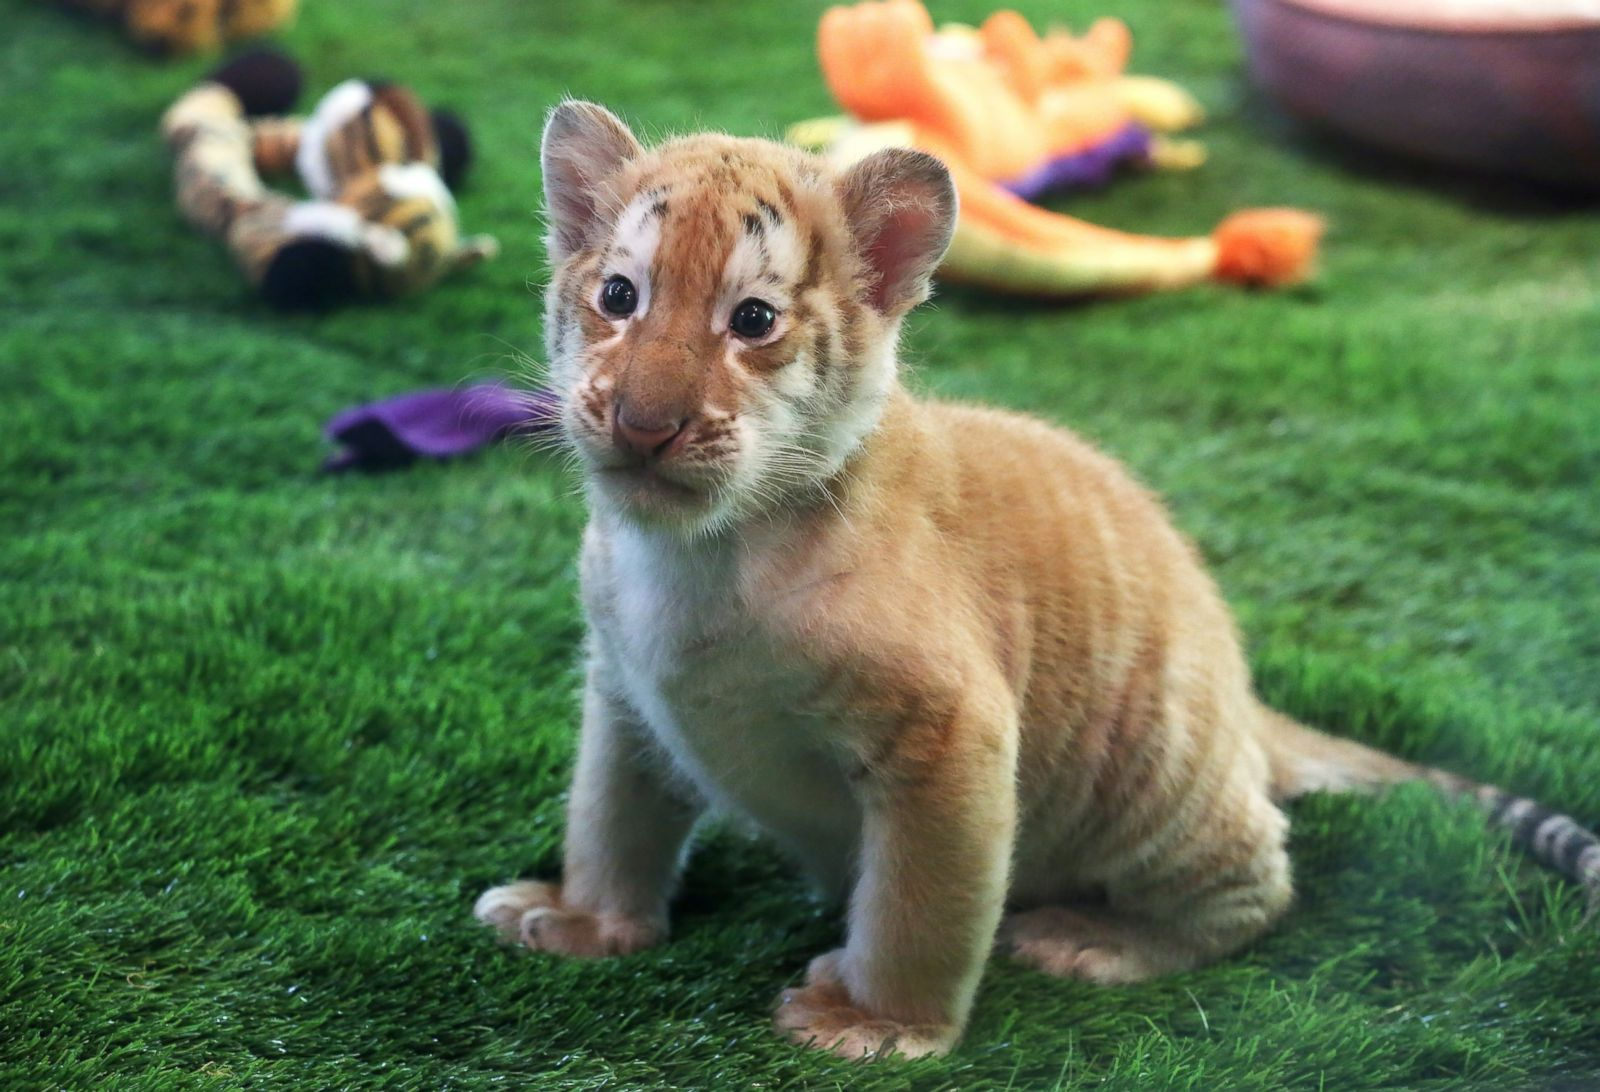 Cutest baby animals from around the world Photos | Image ...